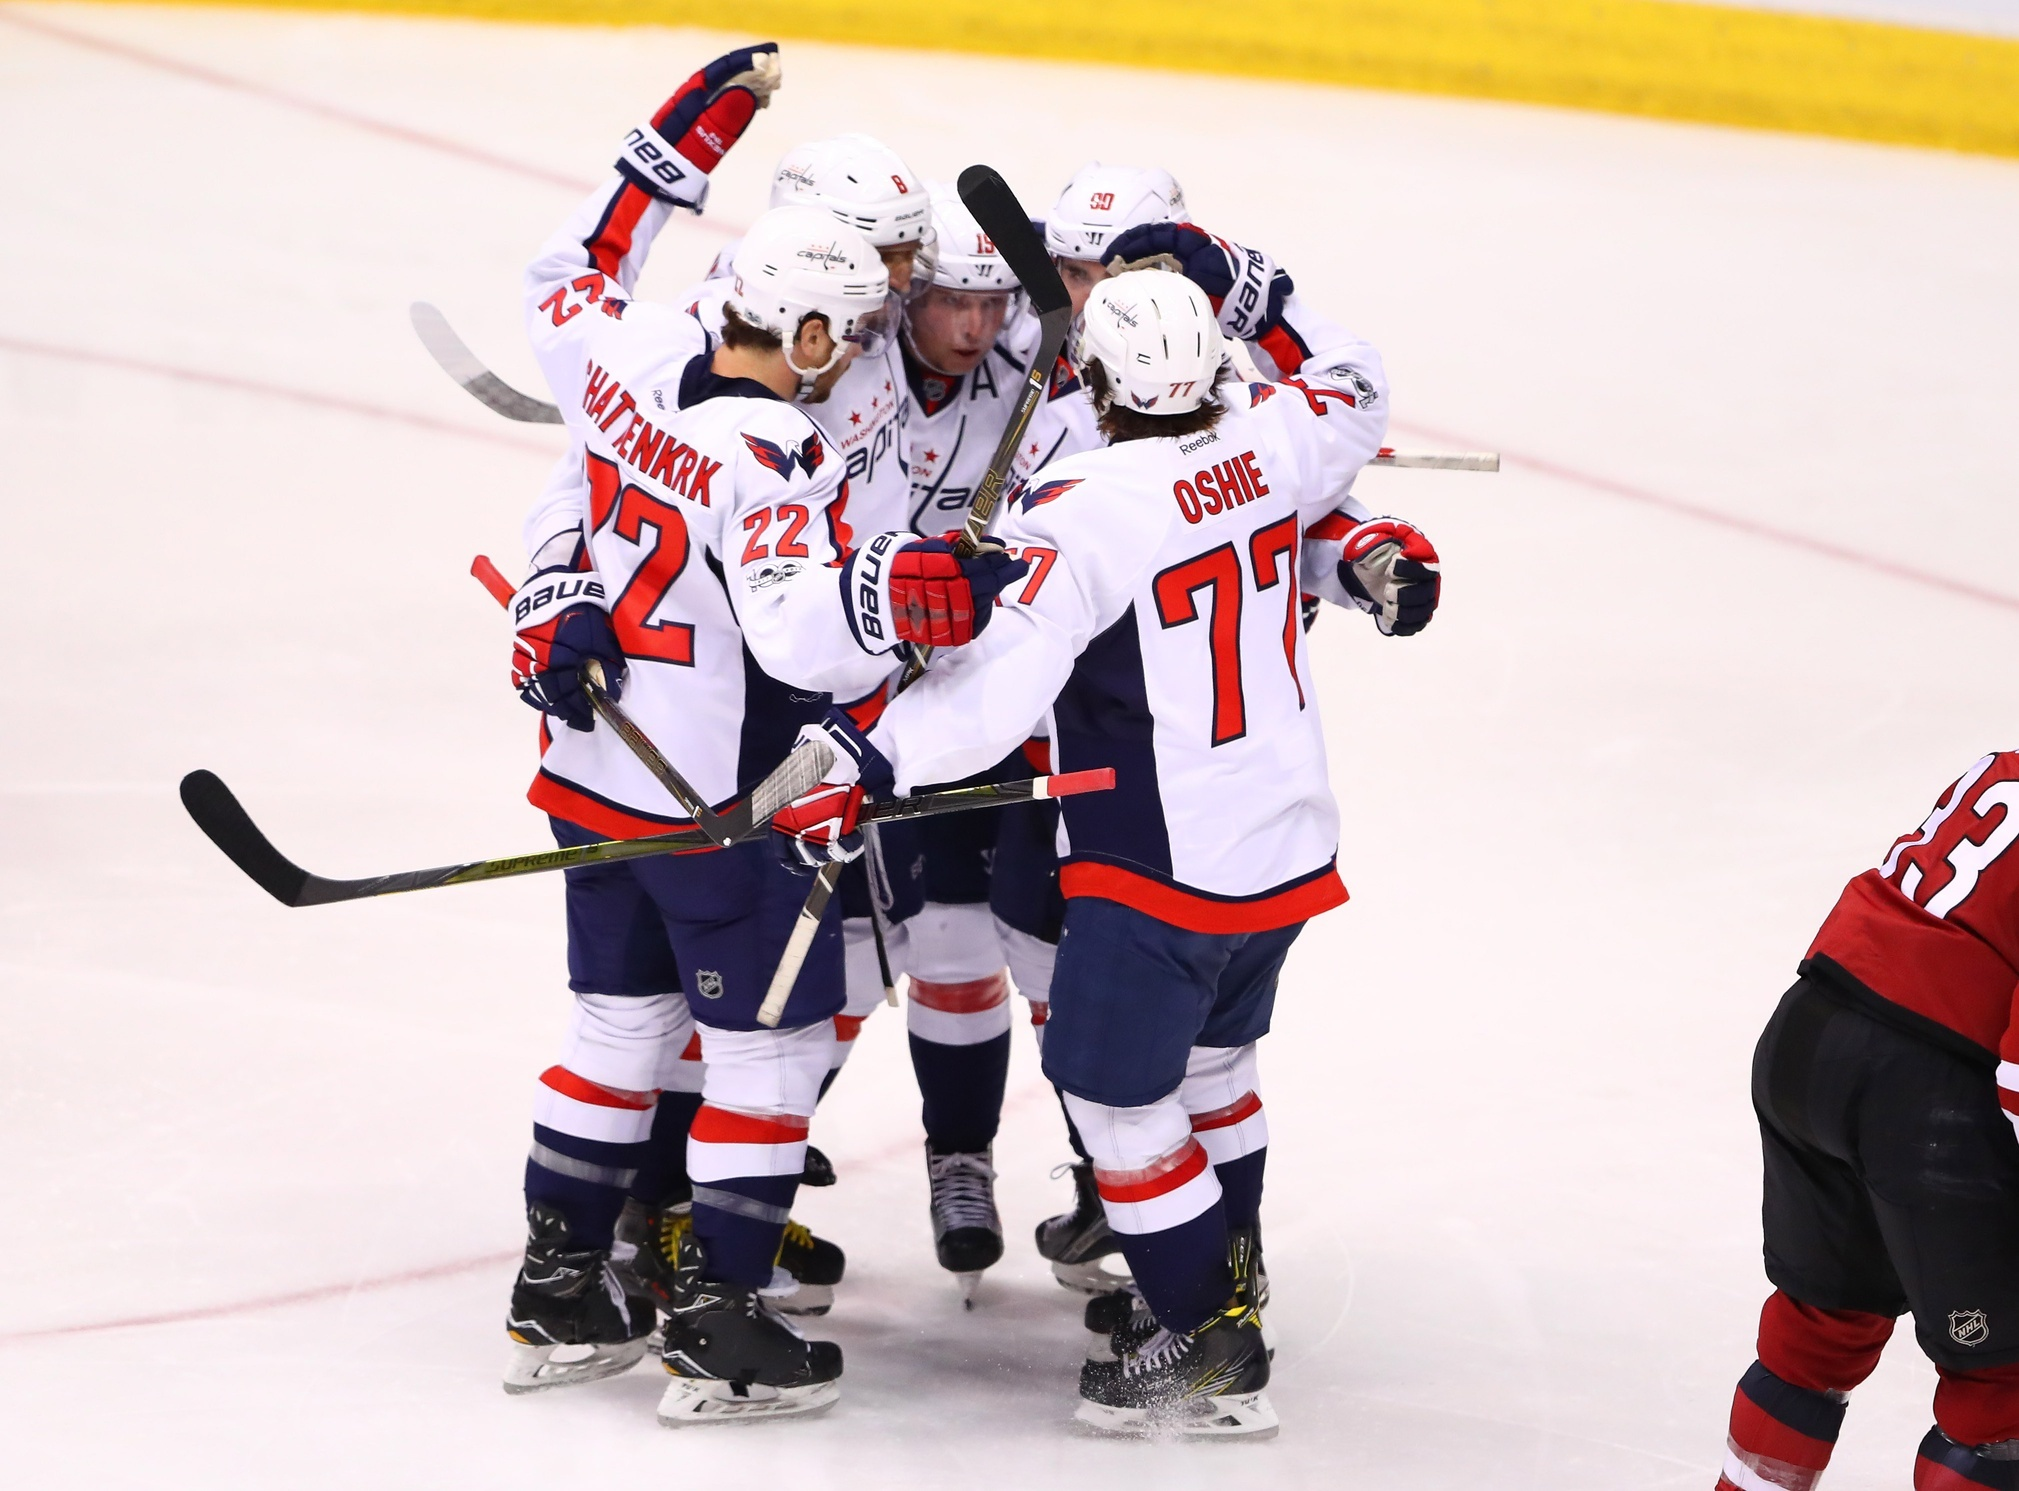 741ea56d7ef This Time, the Washington Capitals Won't Choke… Unless They Do - VICE